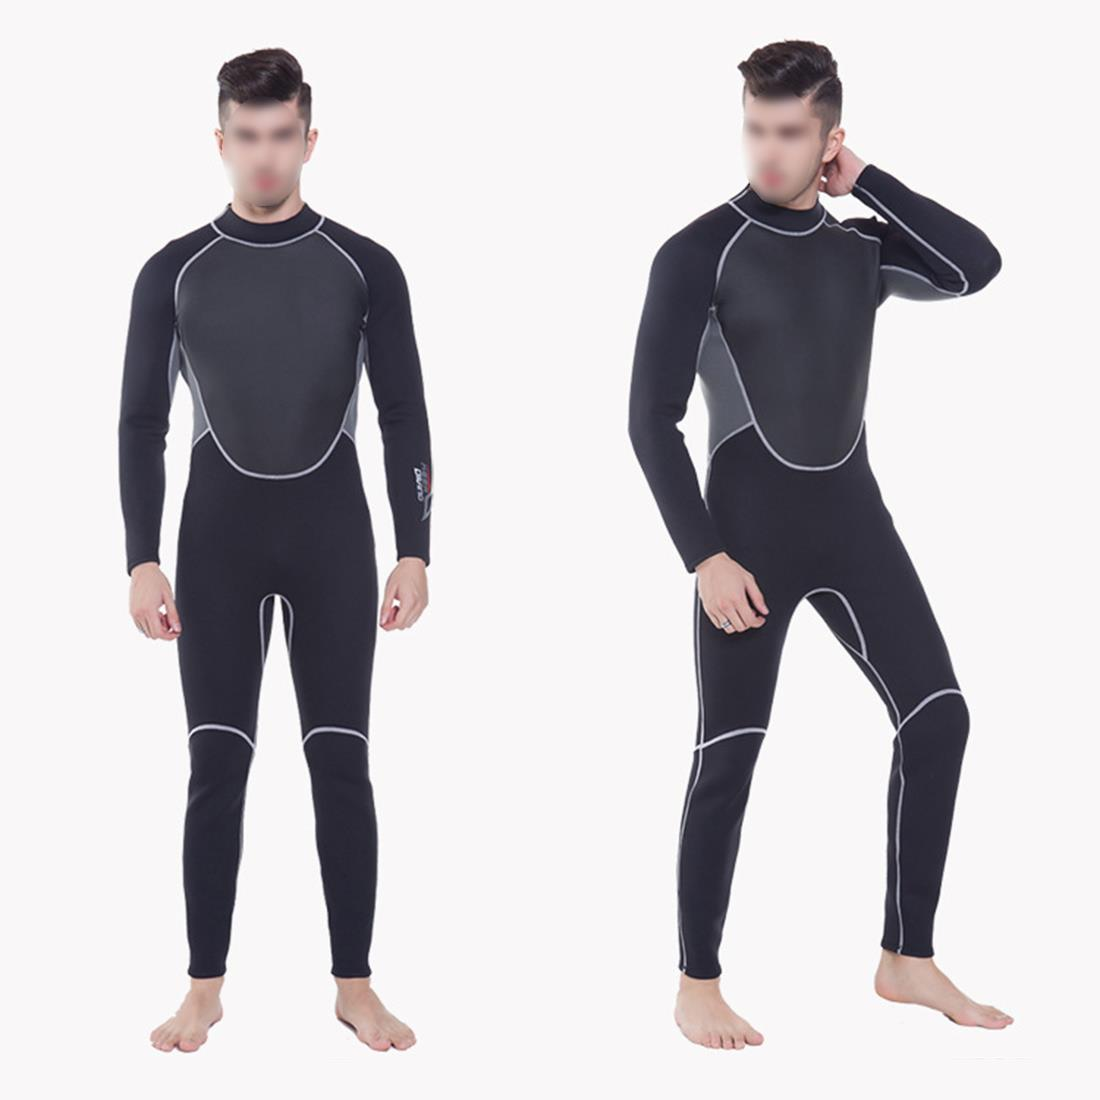 KEEP DIVING Professional 3MM Neoprene Wetsuit One Piece Full body For Men Scuba Dive Surfing Snorkeling